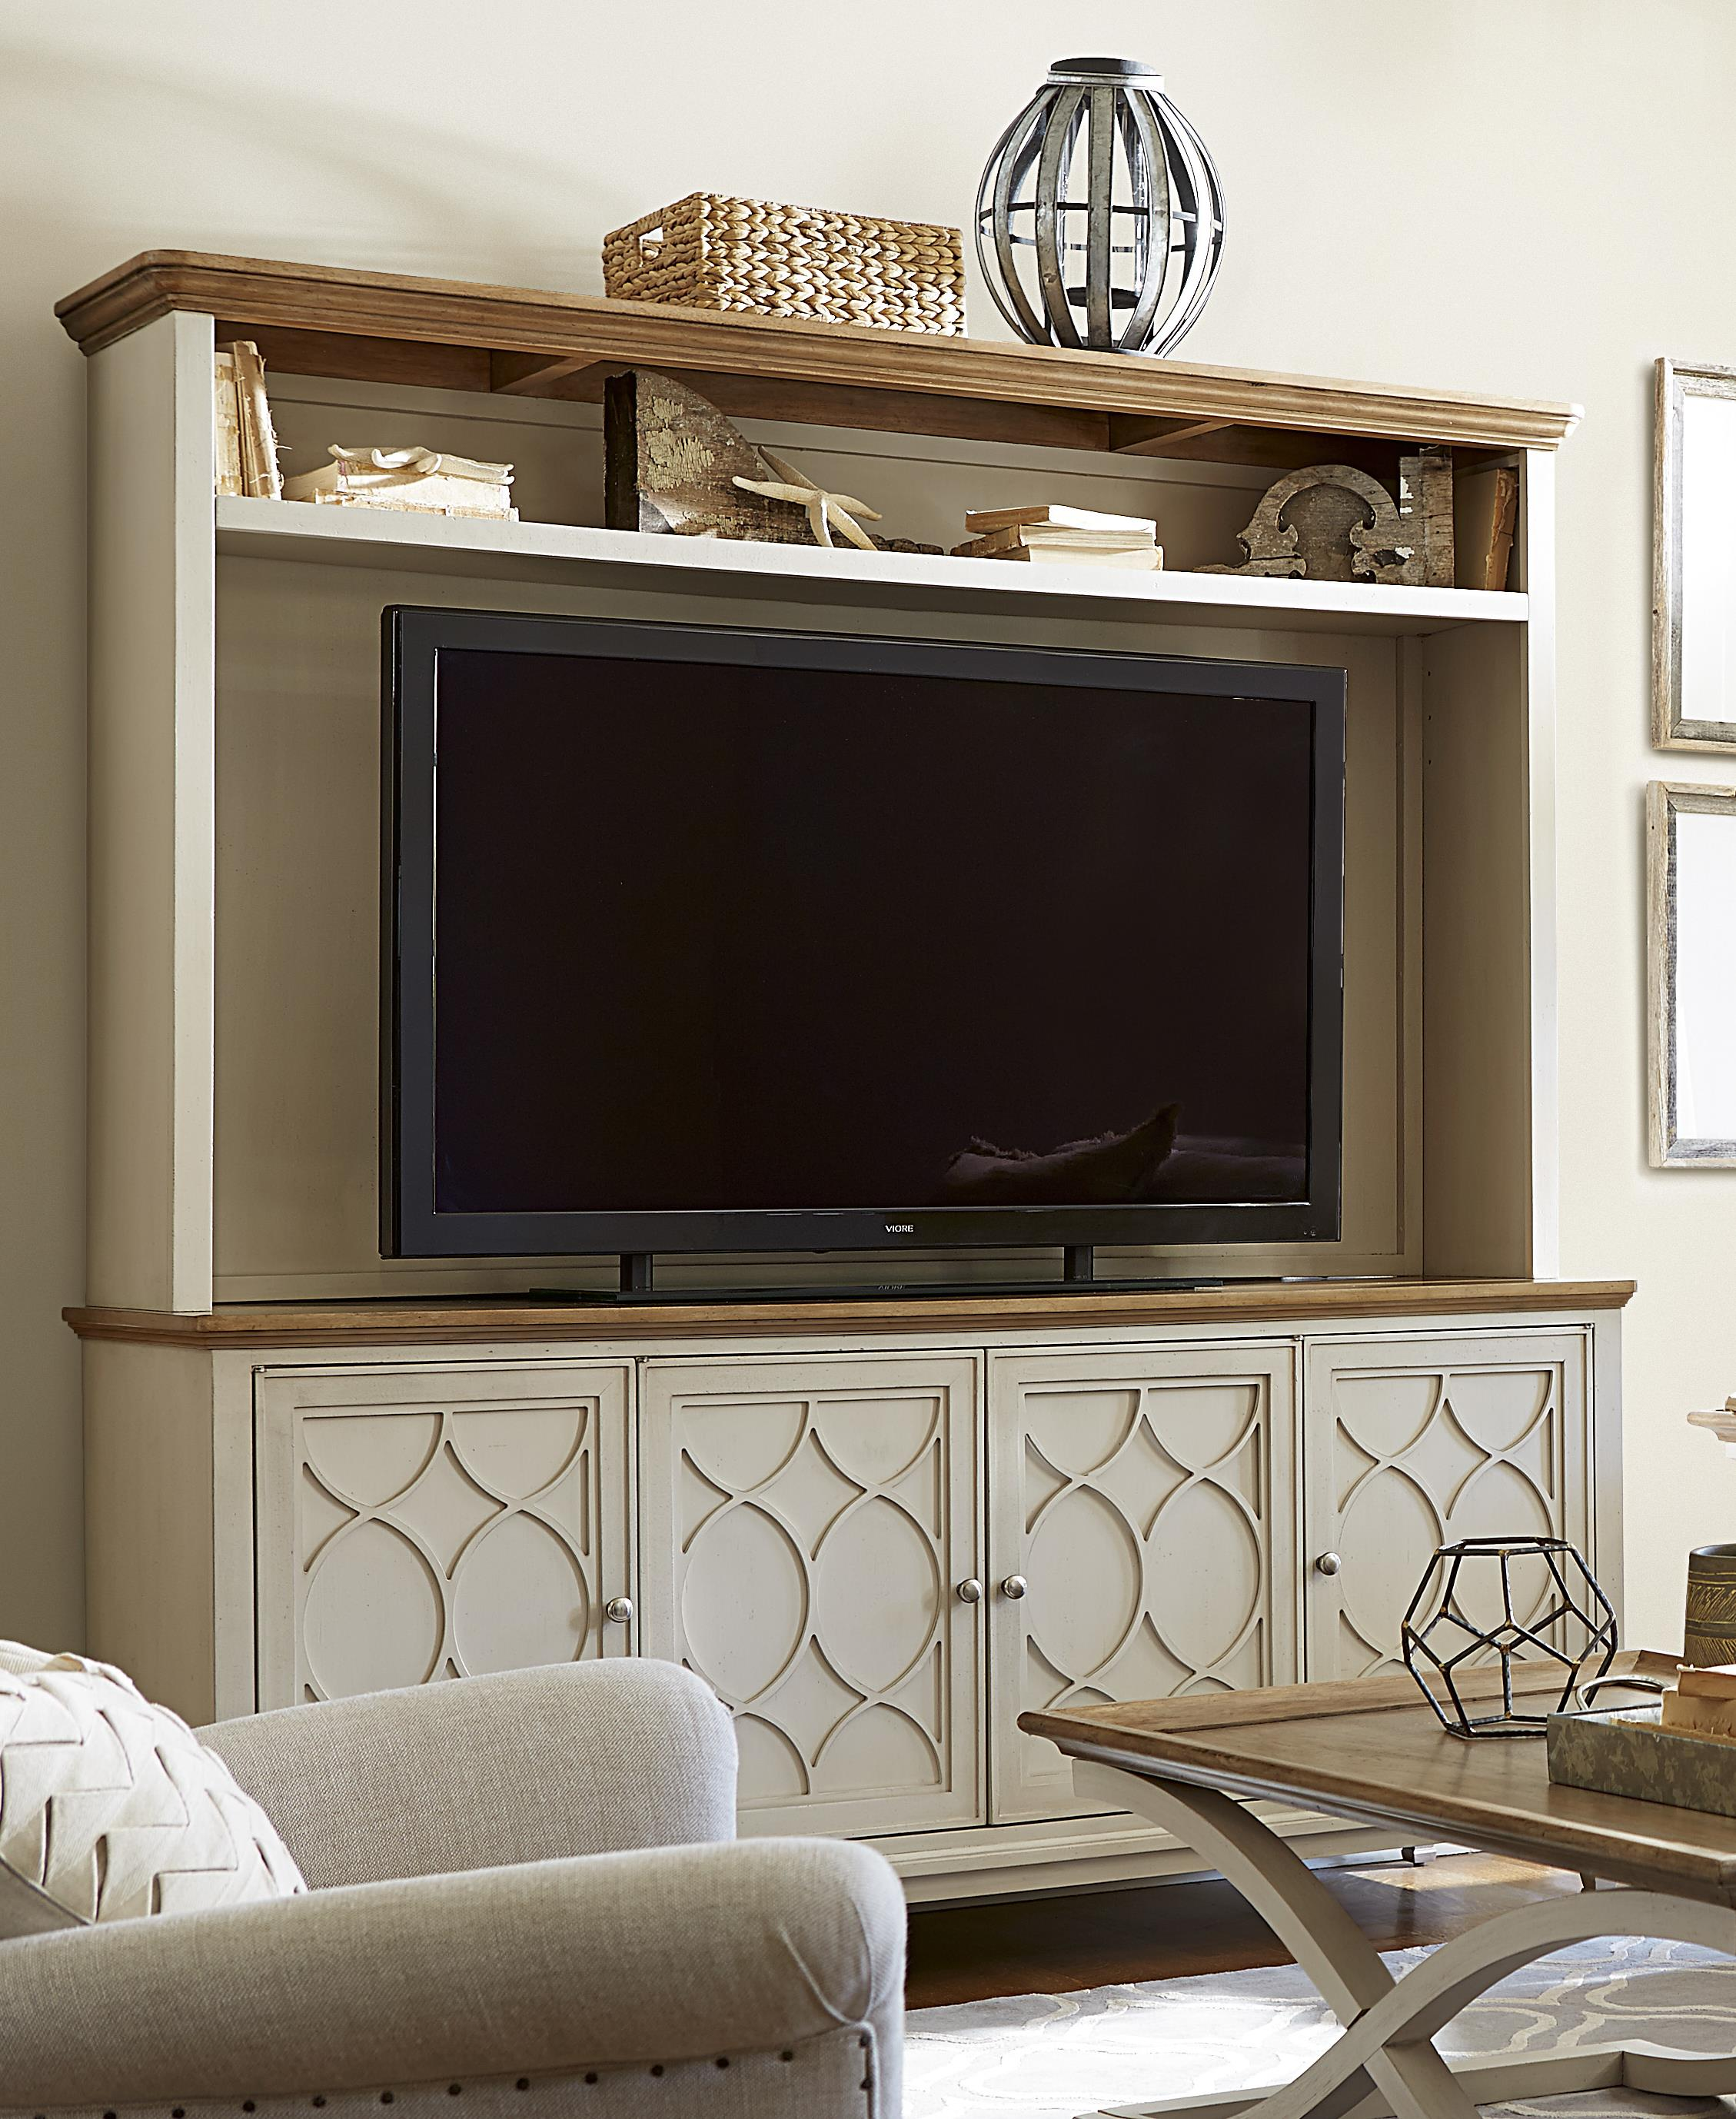 Morris Home Furnishings Montpelier Montpelier Wall Unit - Item Number: 252212673